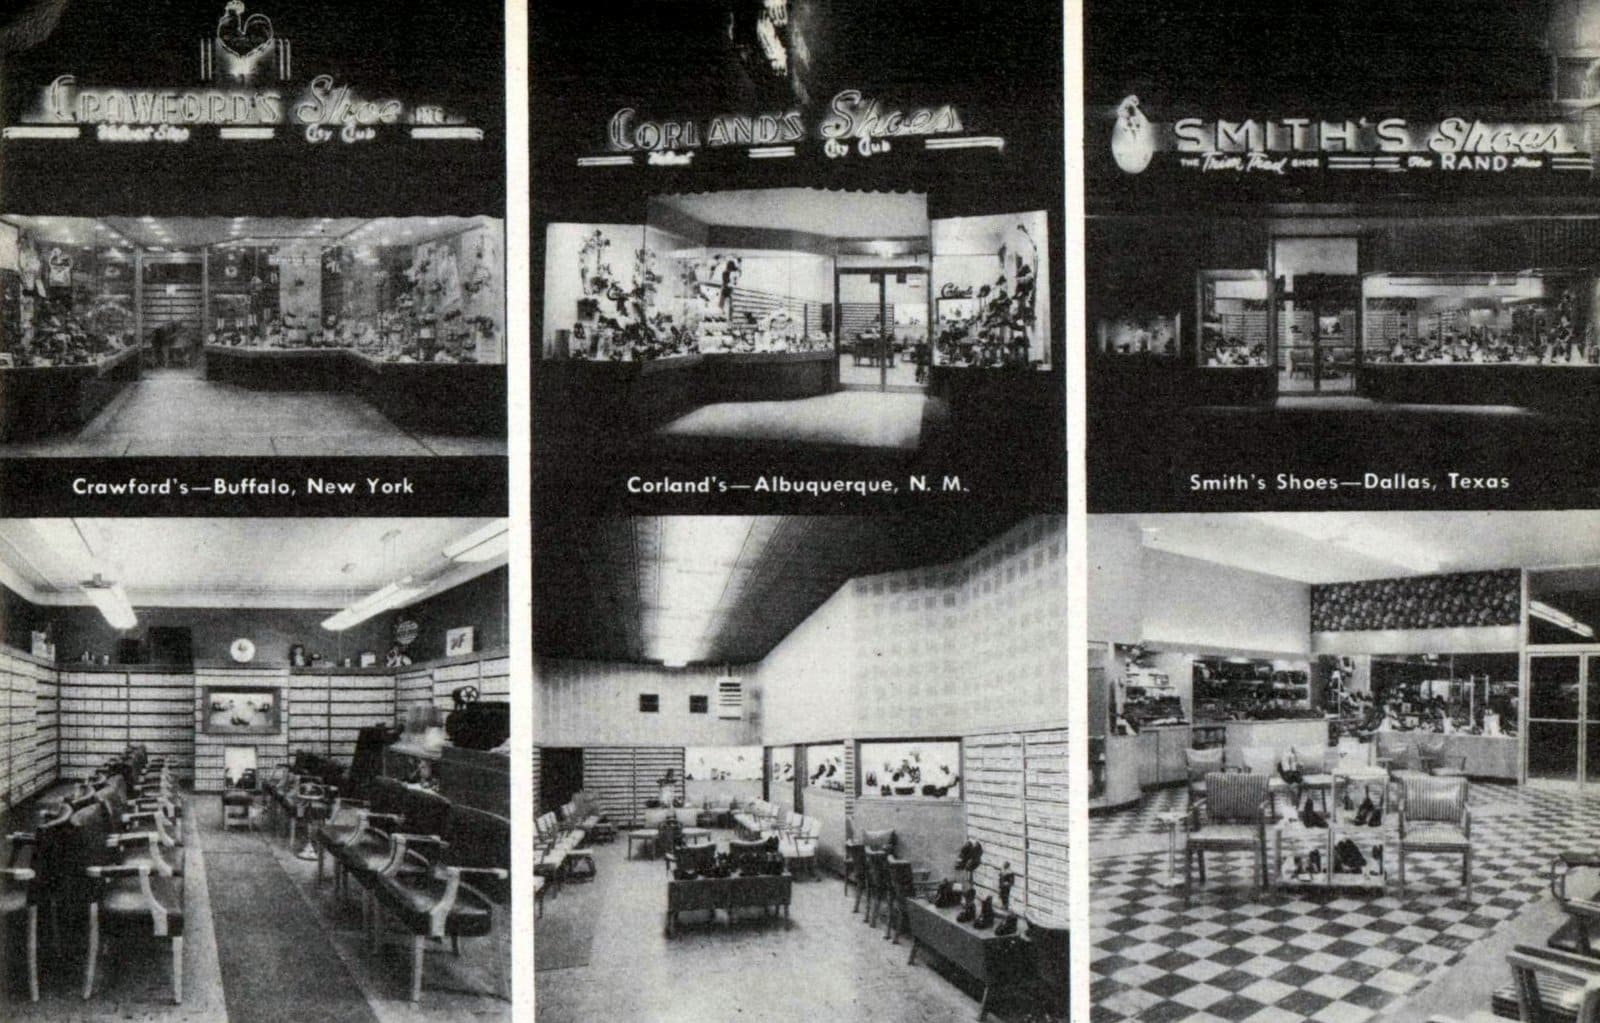 Vintage shoe store interiors from 1951 (1)